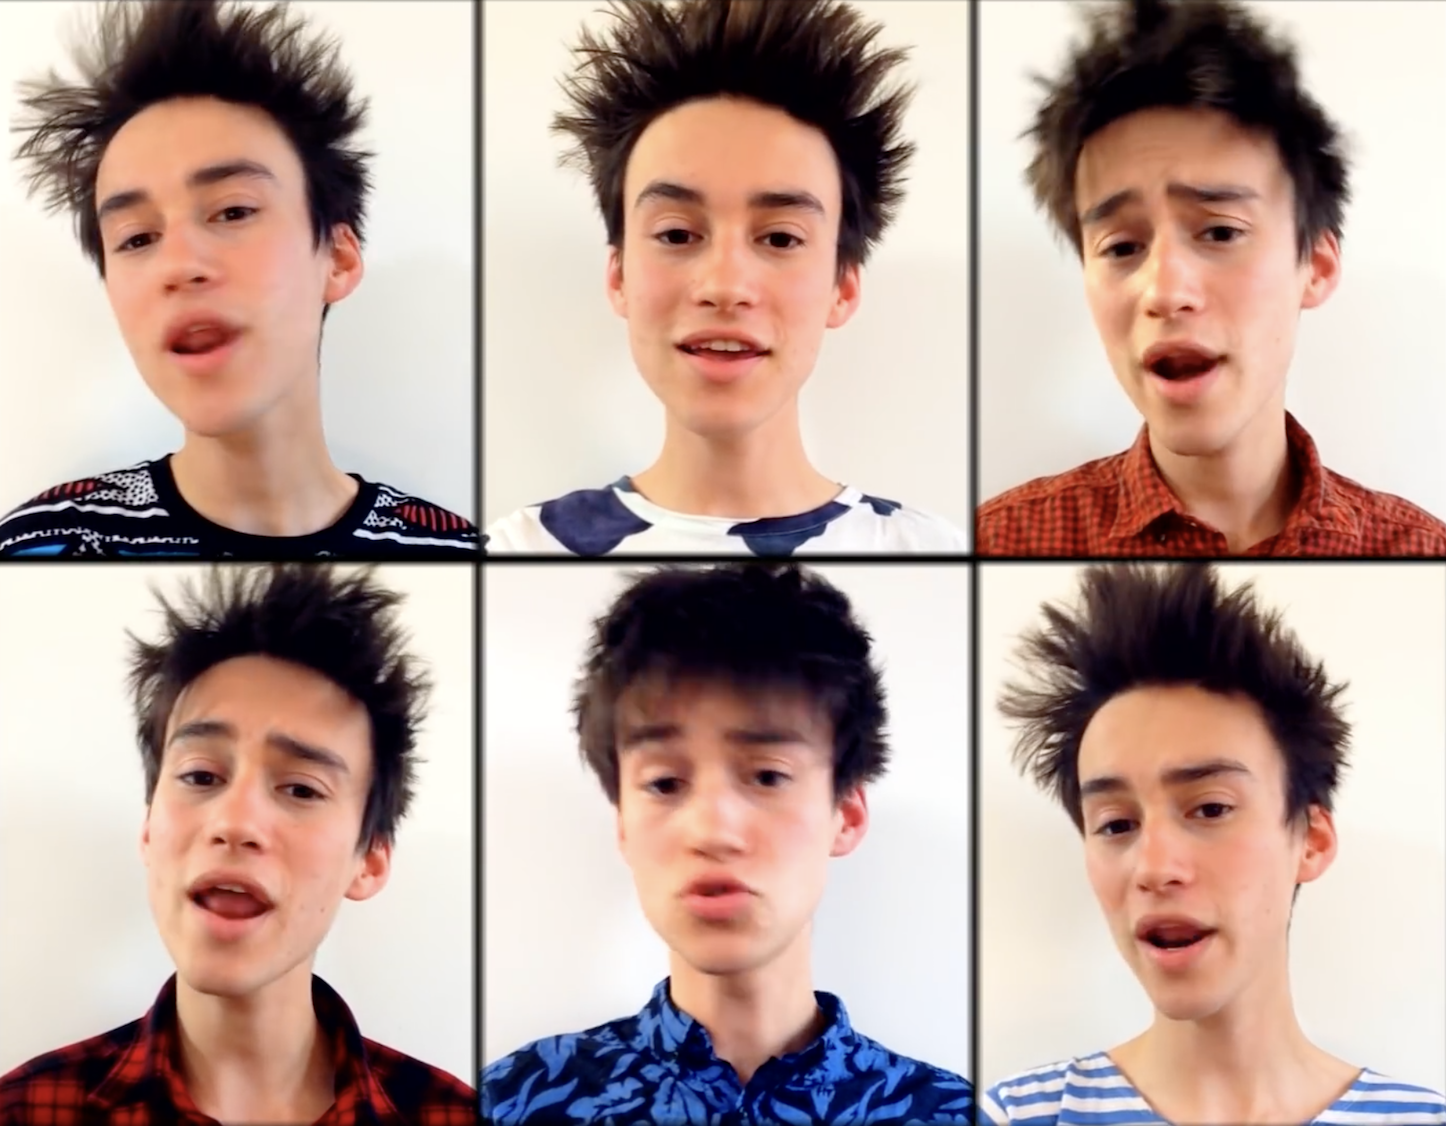 Flinstones Jacob Collier